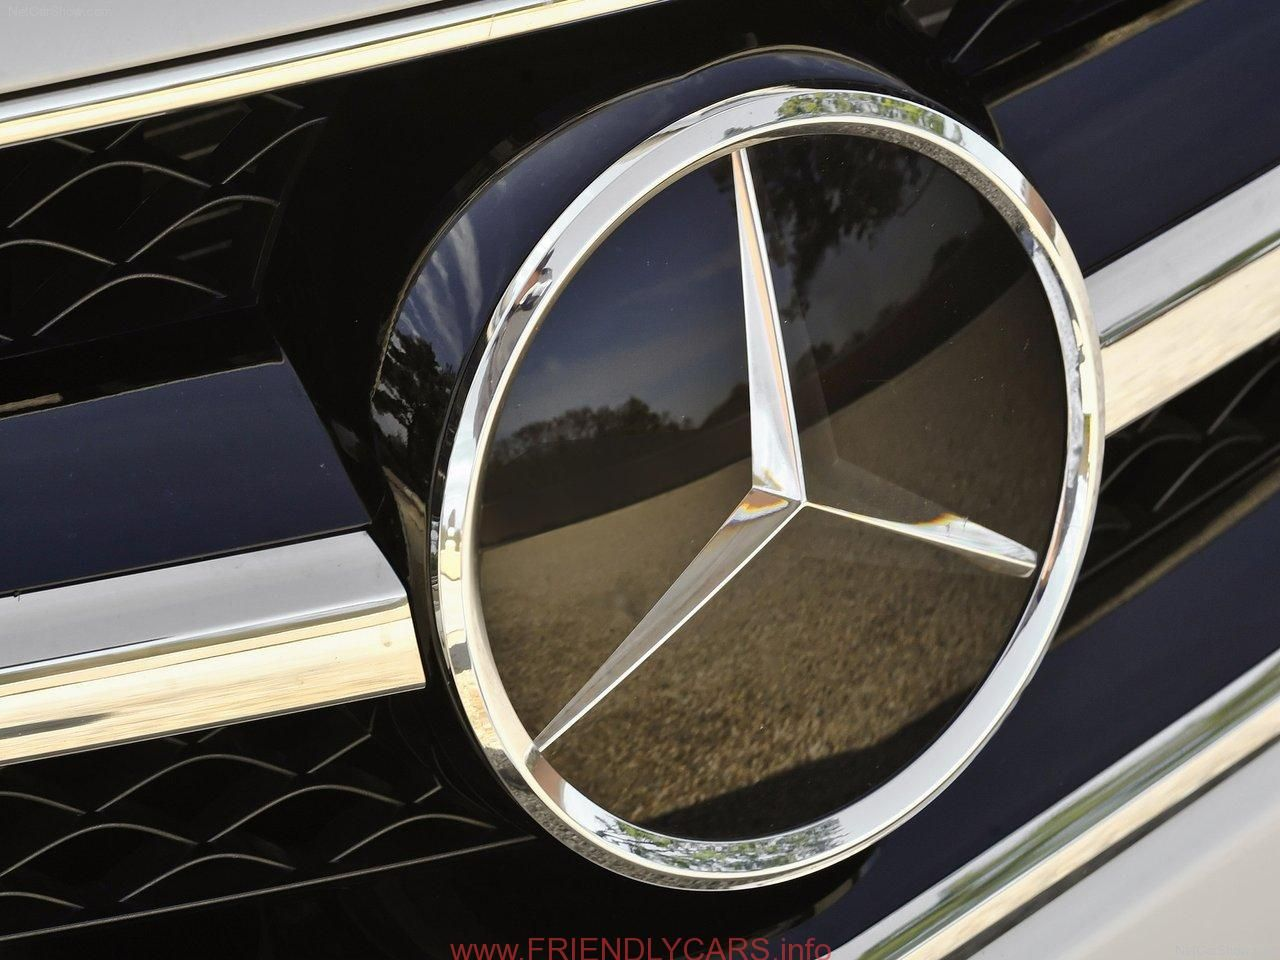 Awesome mercedes amg logo wallpaper car images hd all cars for Mercedes benz amg logo